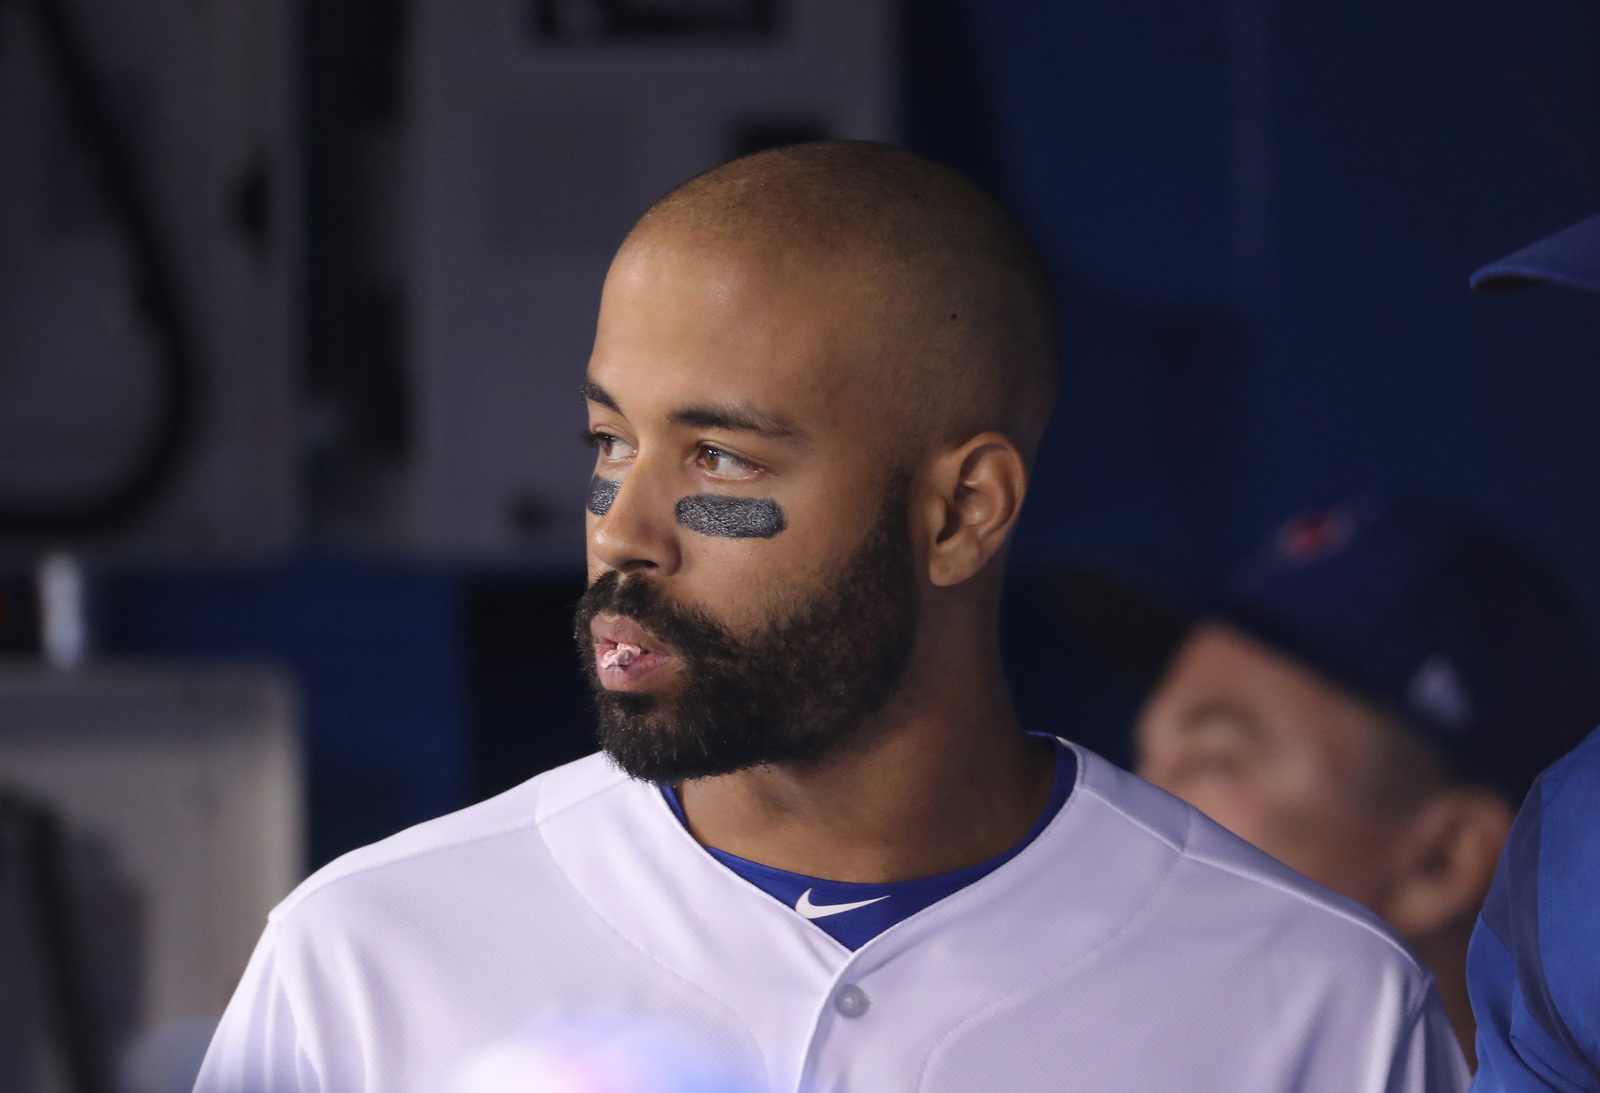 Toronto Blue Jays may be ready to move on from Dalton Pompey